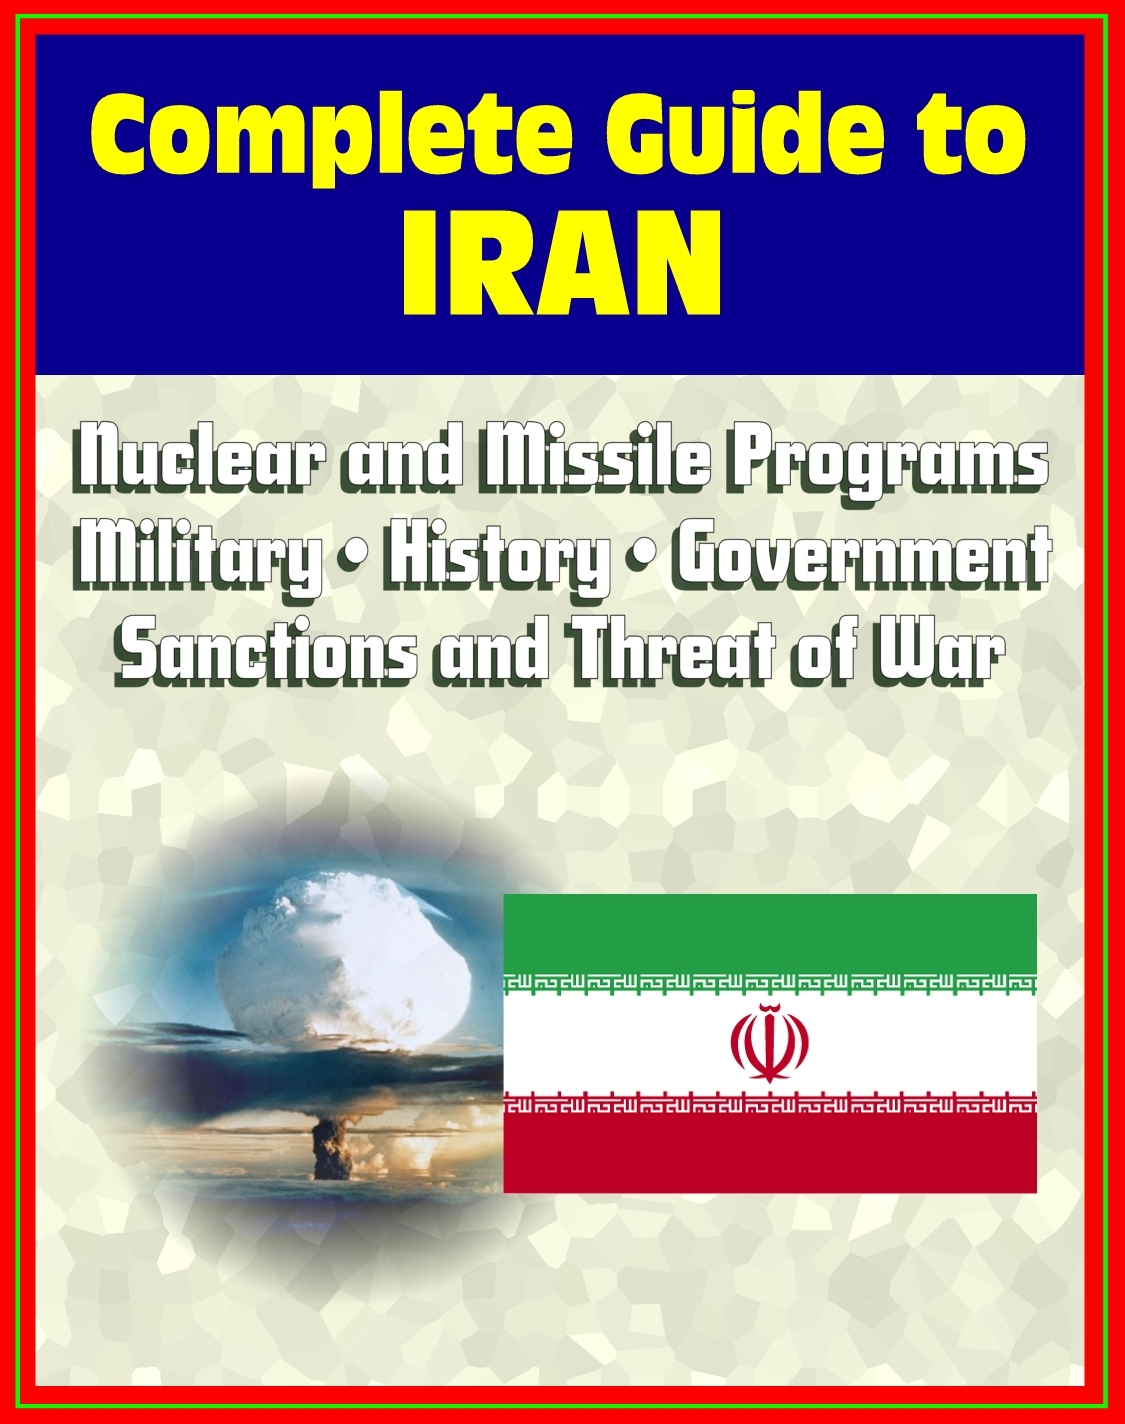 2012 Complete Guide to Iran: Authoritative Coverage of Iranian Nuclear and Missile Programs, Sanctions and Threat of War, Regime, Military, Human Rights, Terrorism, History, Economy, Oil Industry